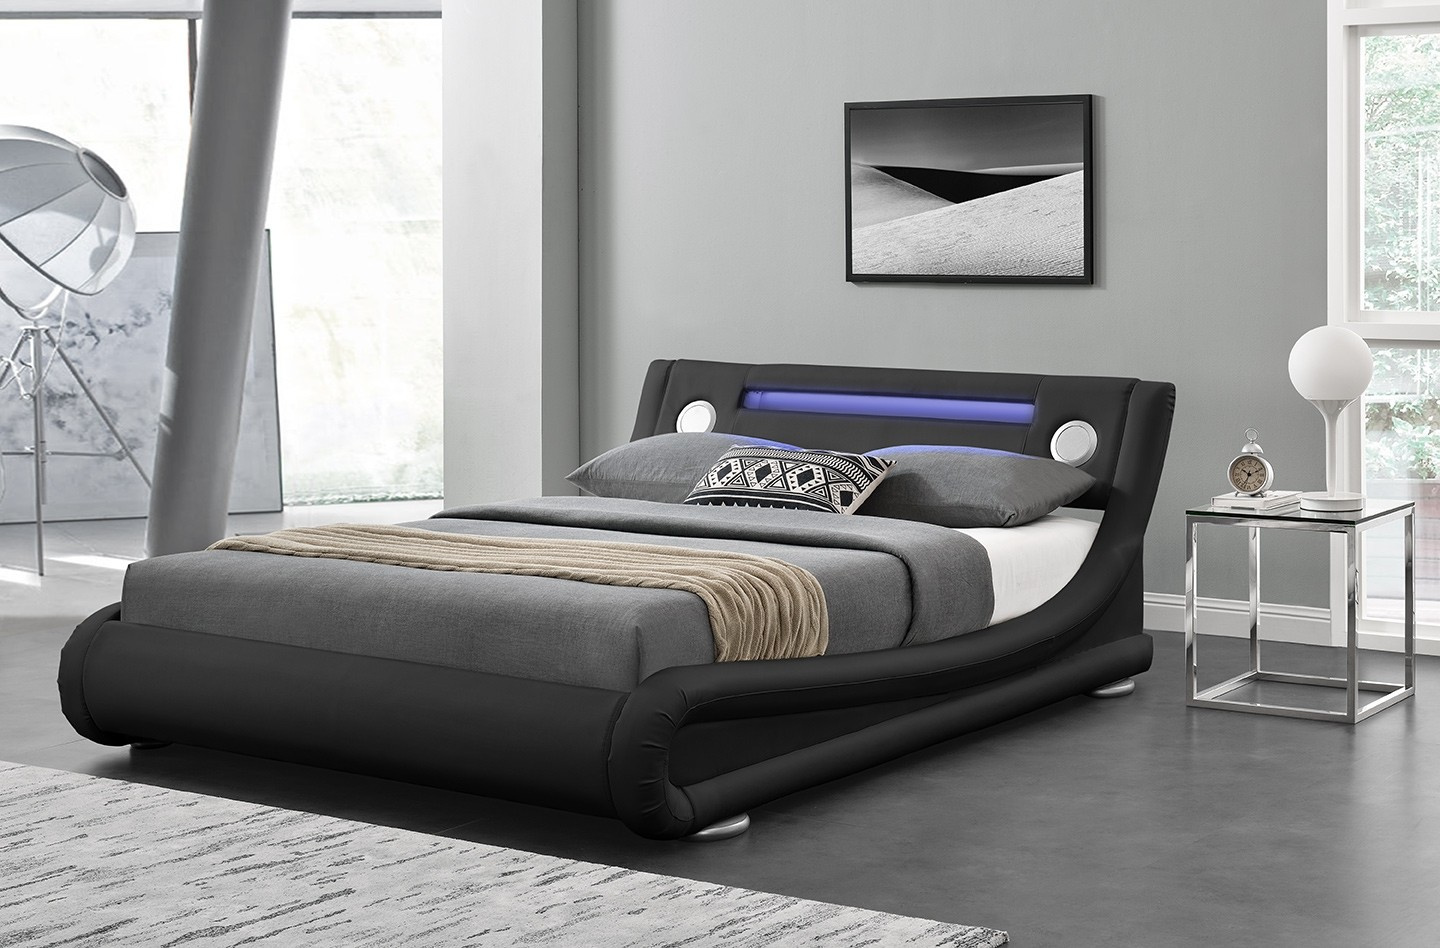 Led Light Bluetooth Speaker Leather Bed Frame Abreo Home